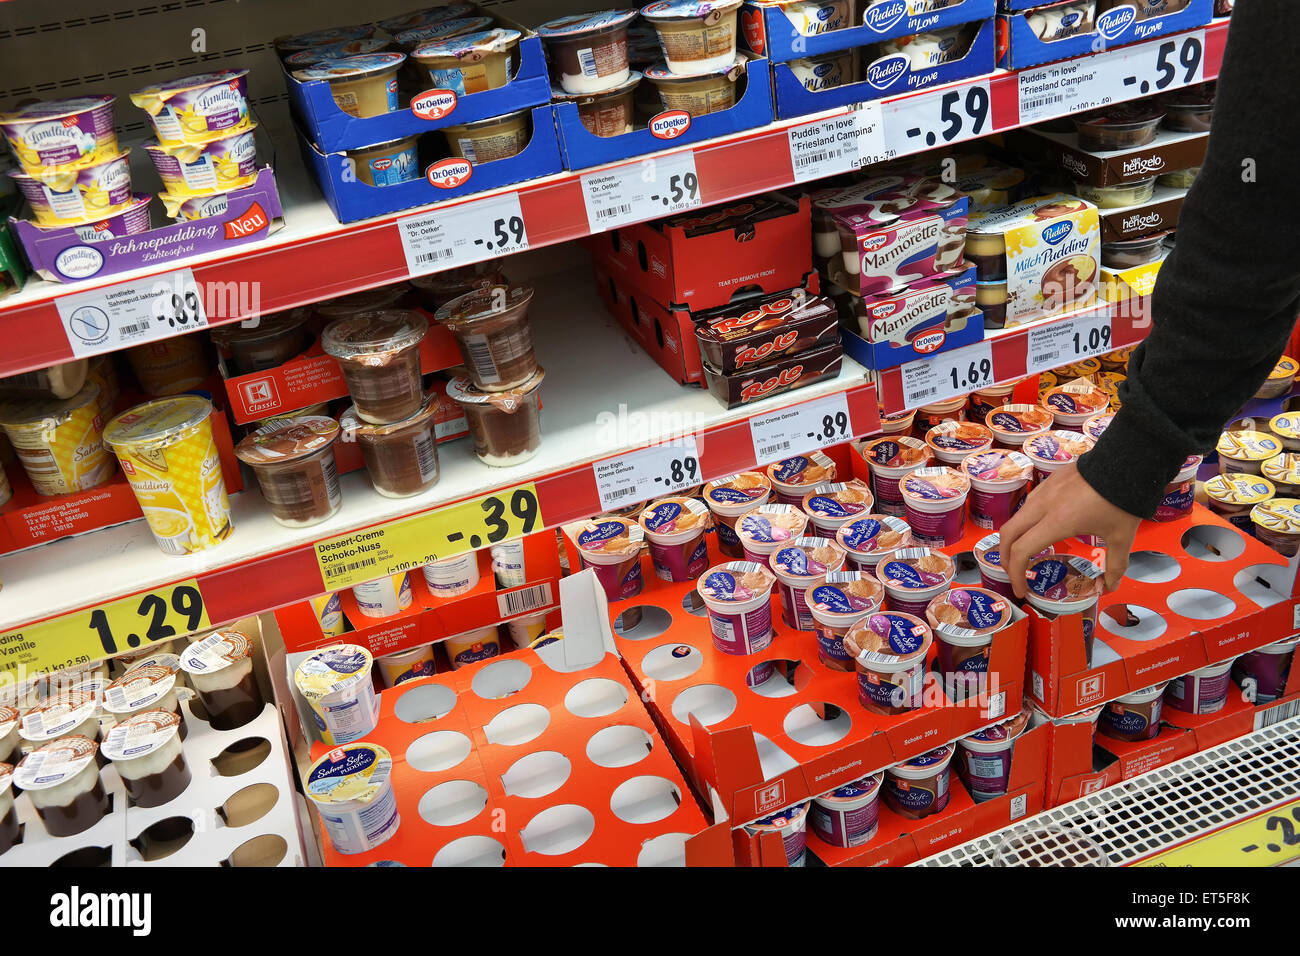 Custards and puddings in a supermarket - Stock Image